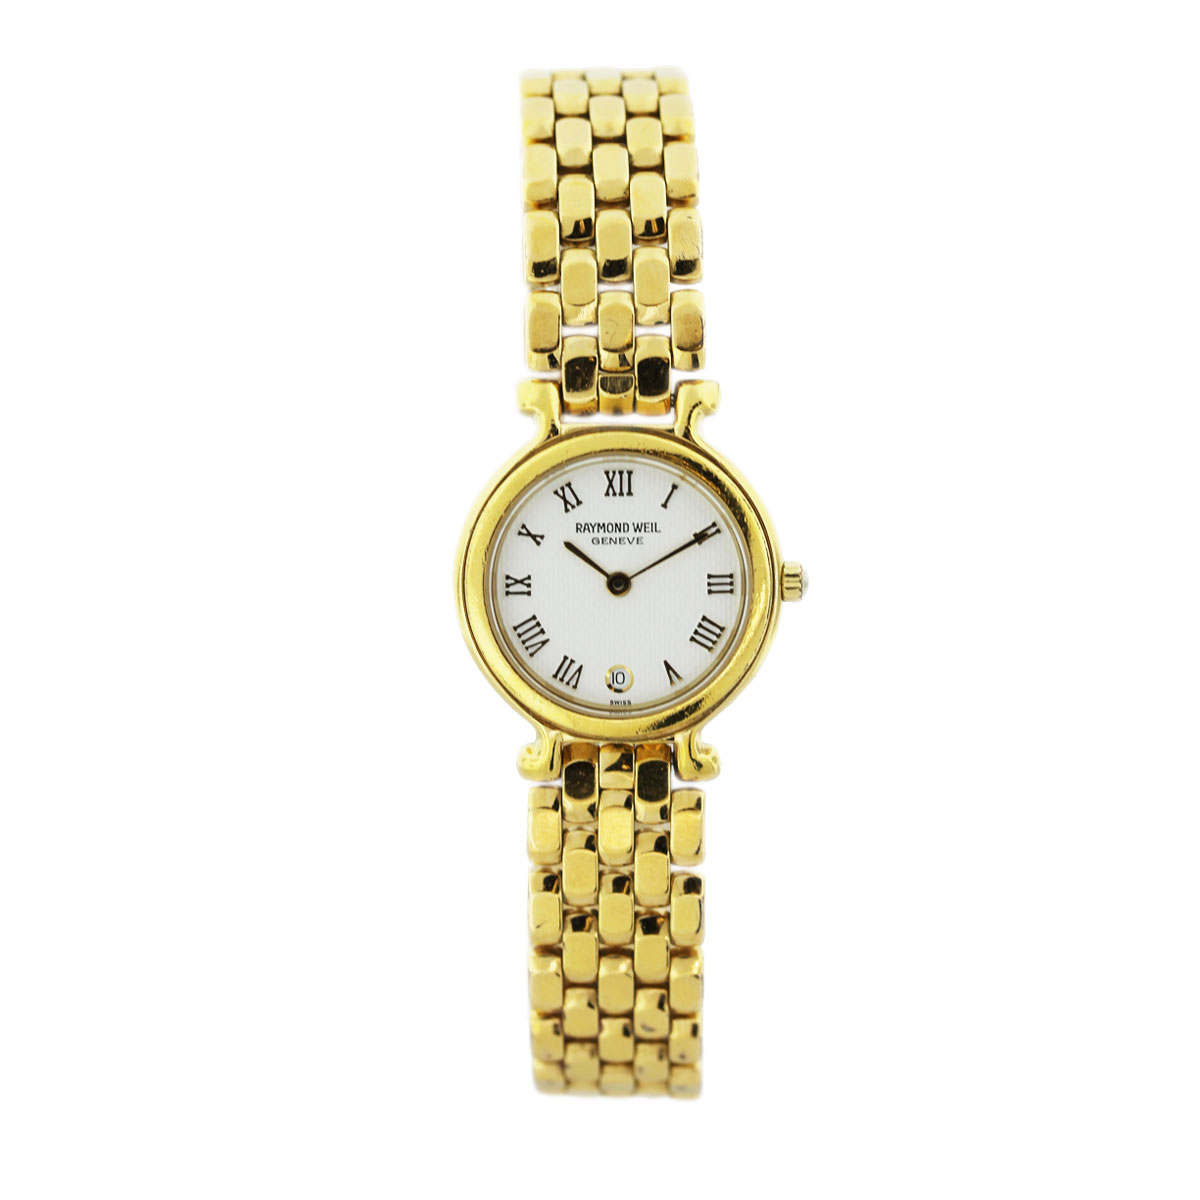 raymond weil 18k gold tone stainless steel